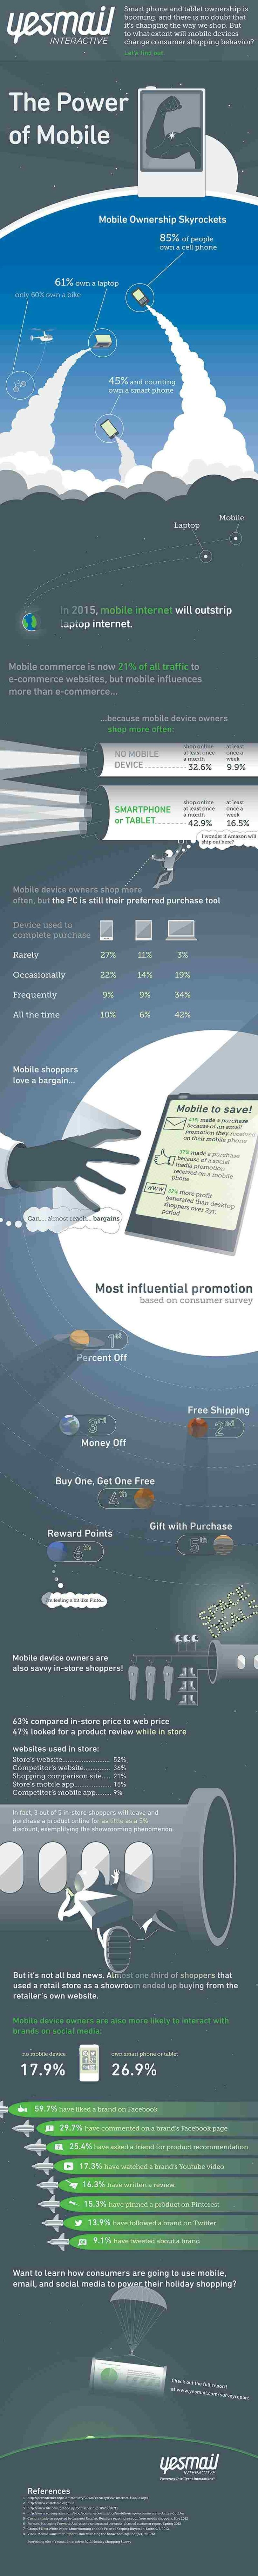 Infographic on the The Power of Mobile   MarketingProfs